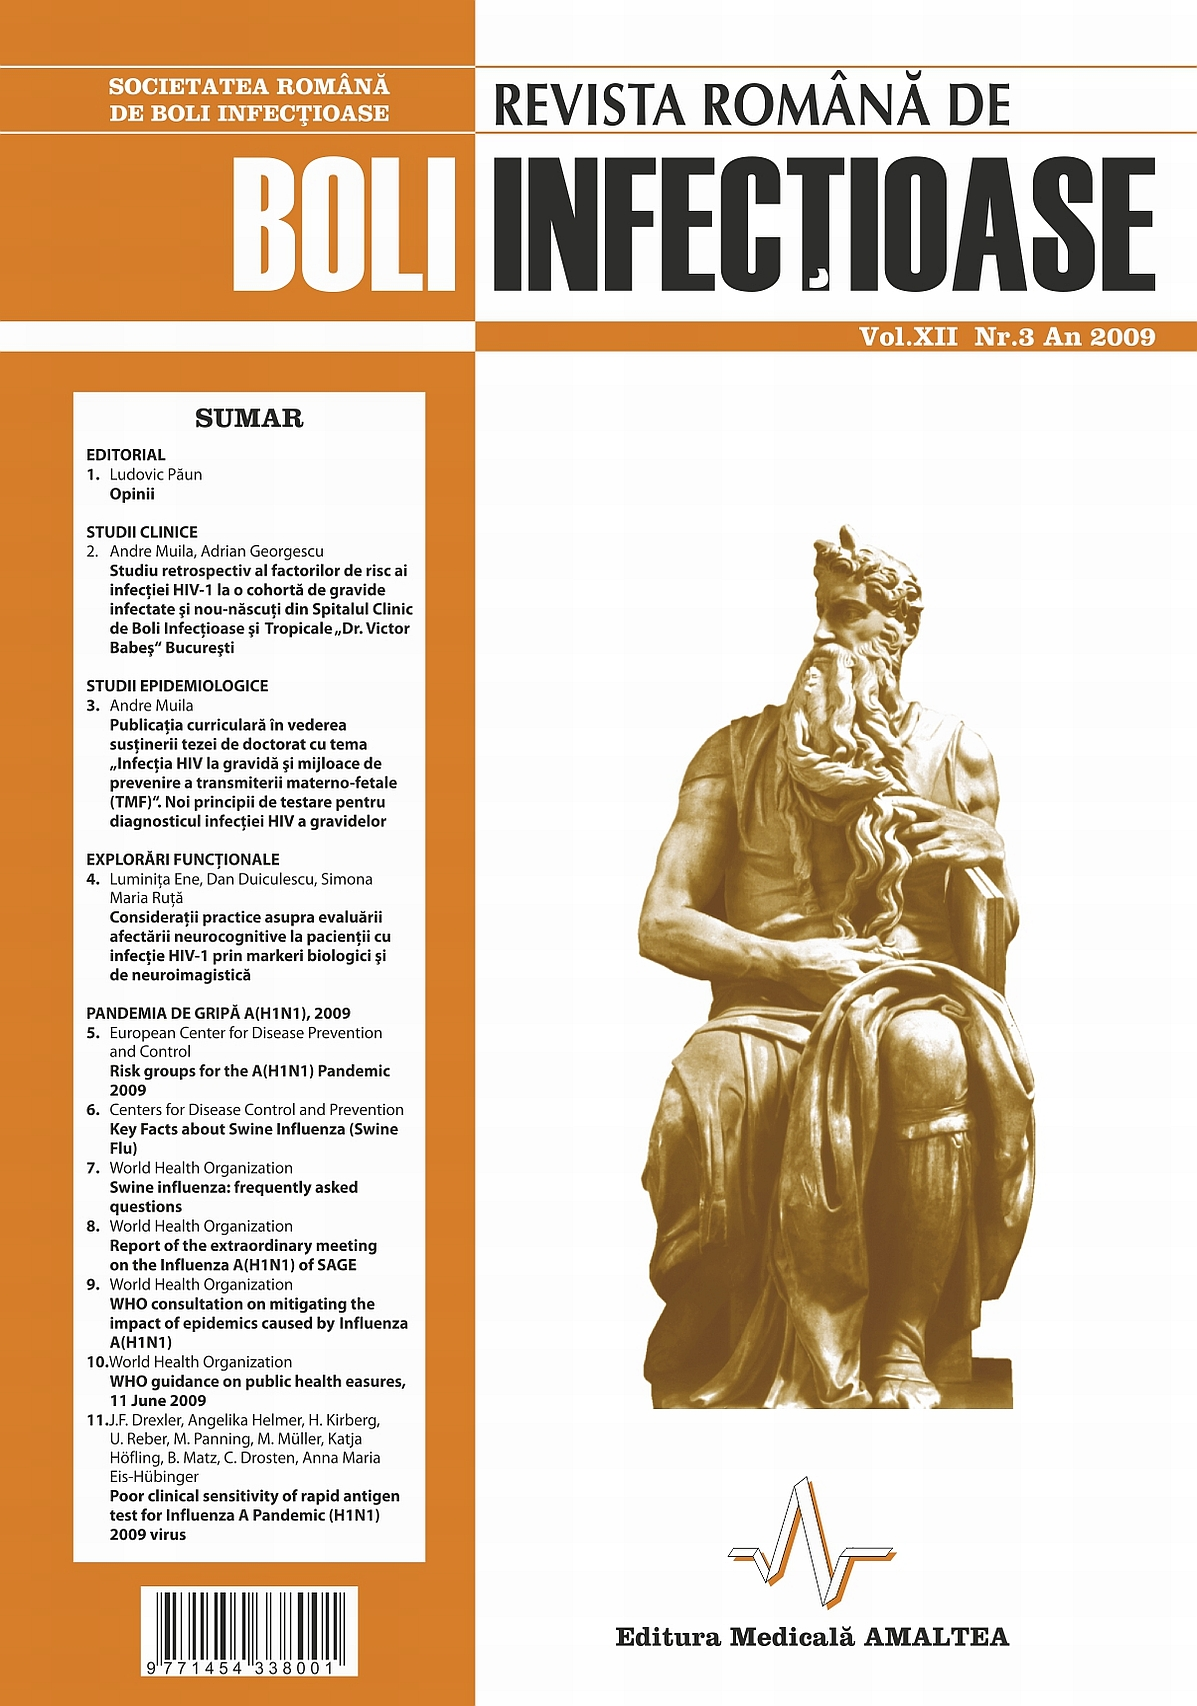 Revista Romana de Boli Infectioase | Vol. XII, No. 3, 2009